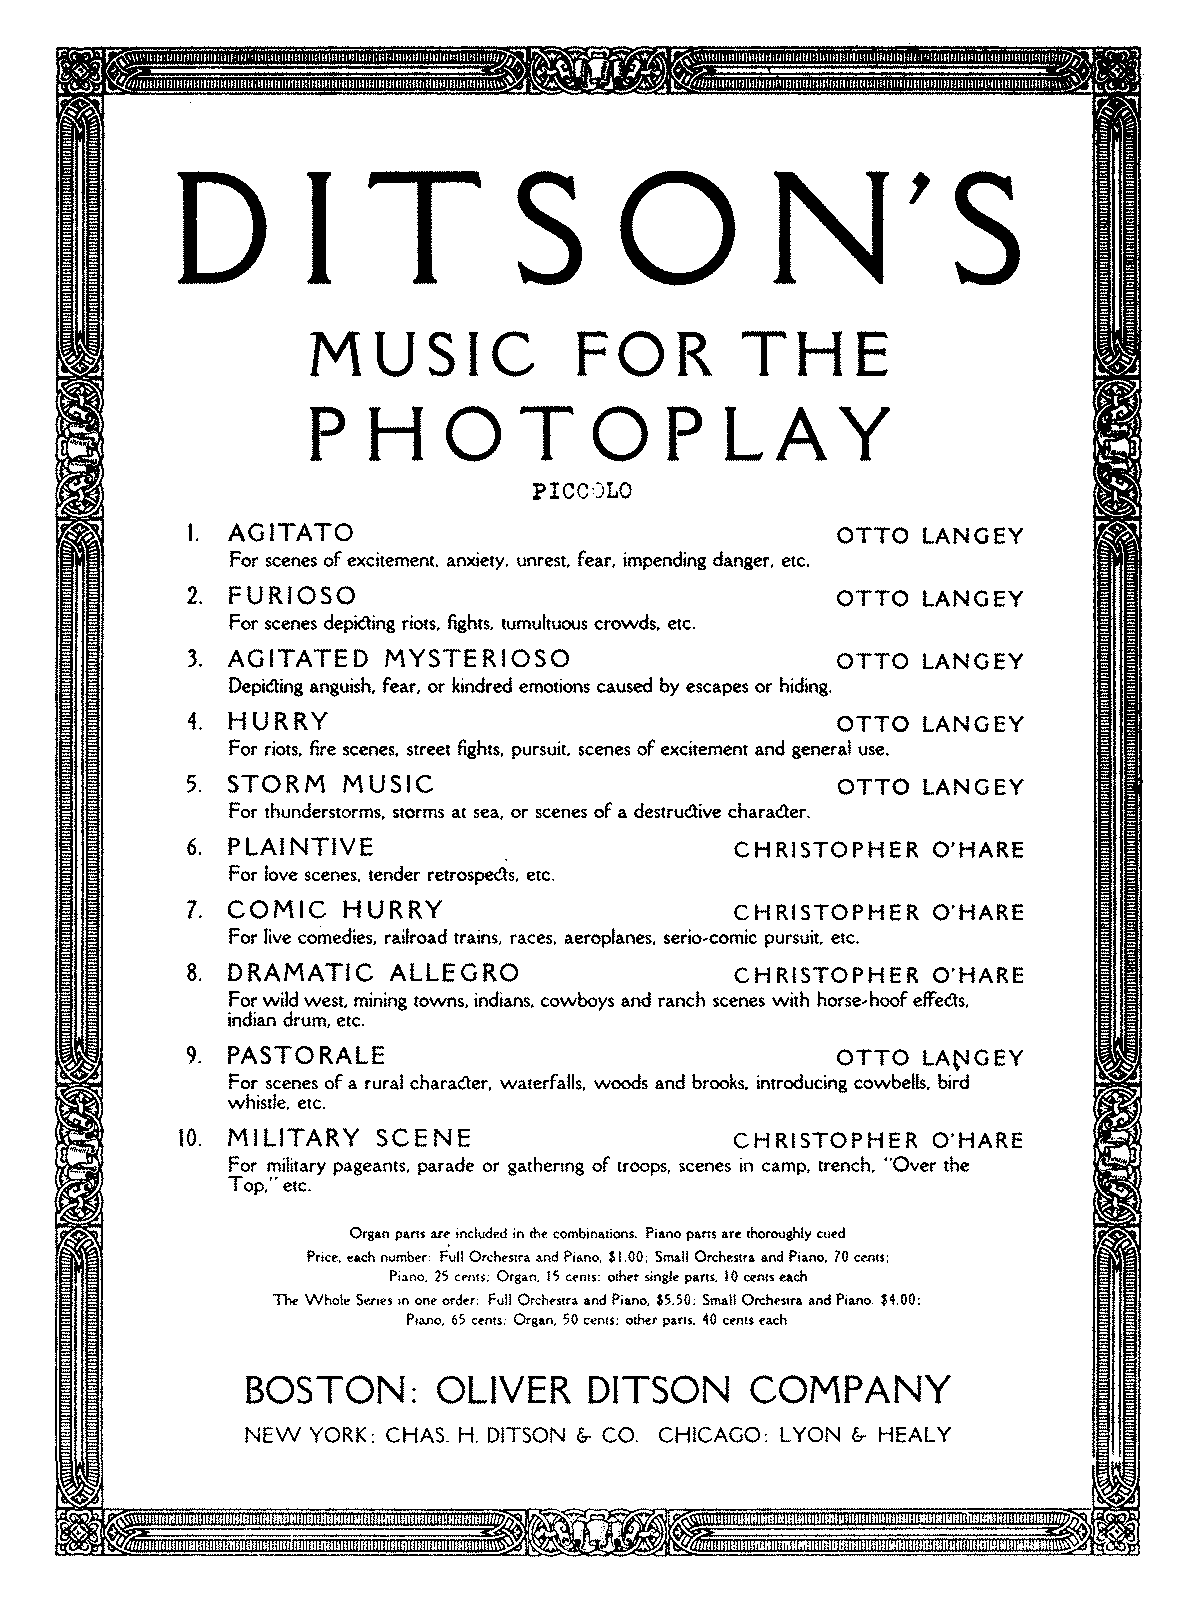 PMLP687883-Ditsons Music for the Photoplay piccolo.pdf